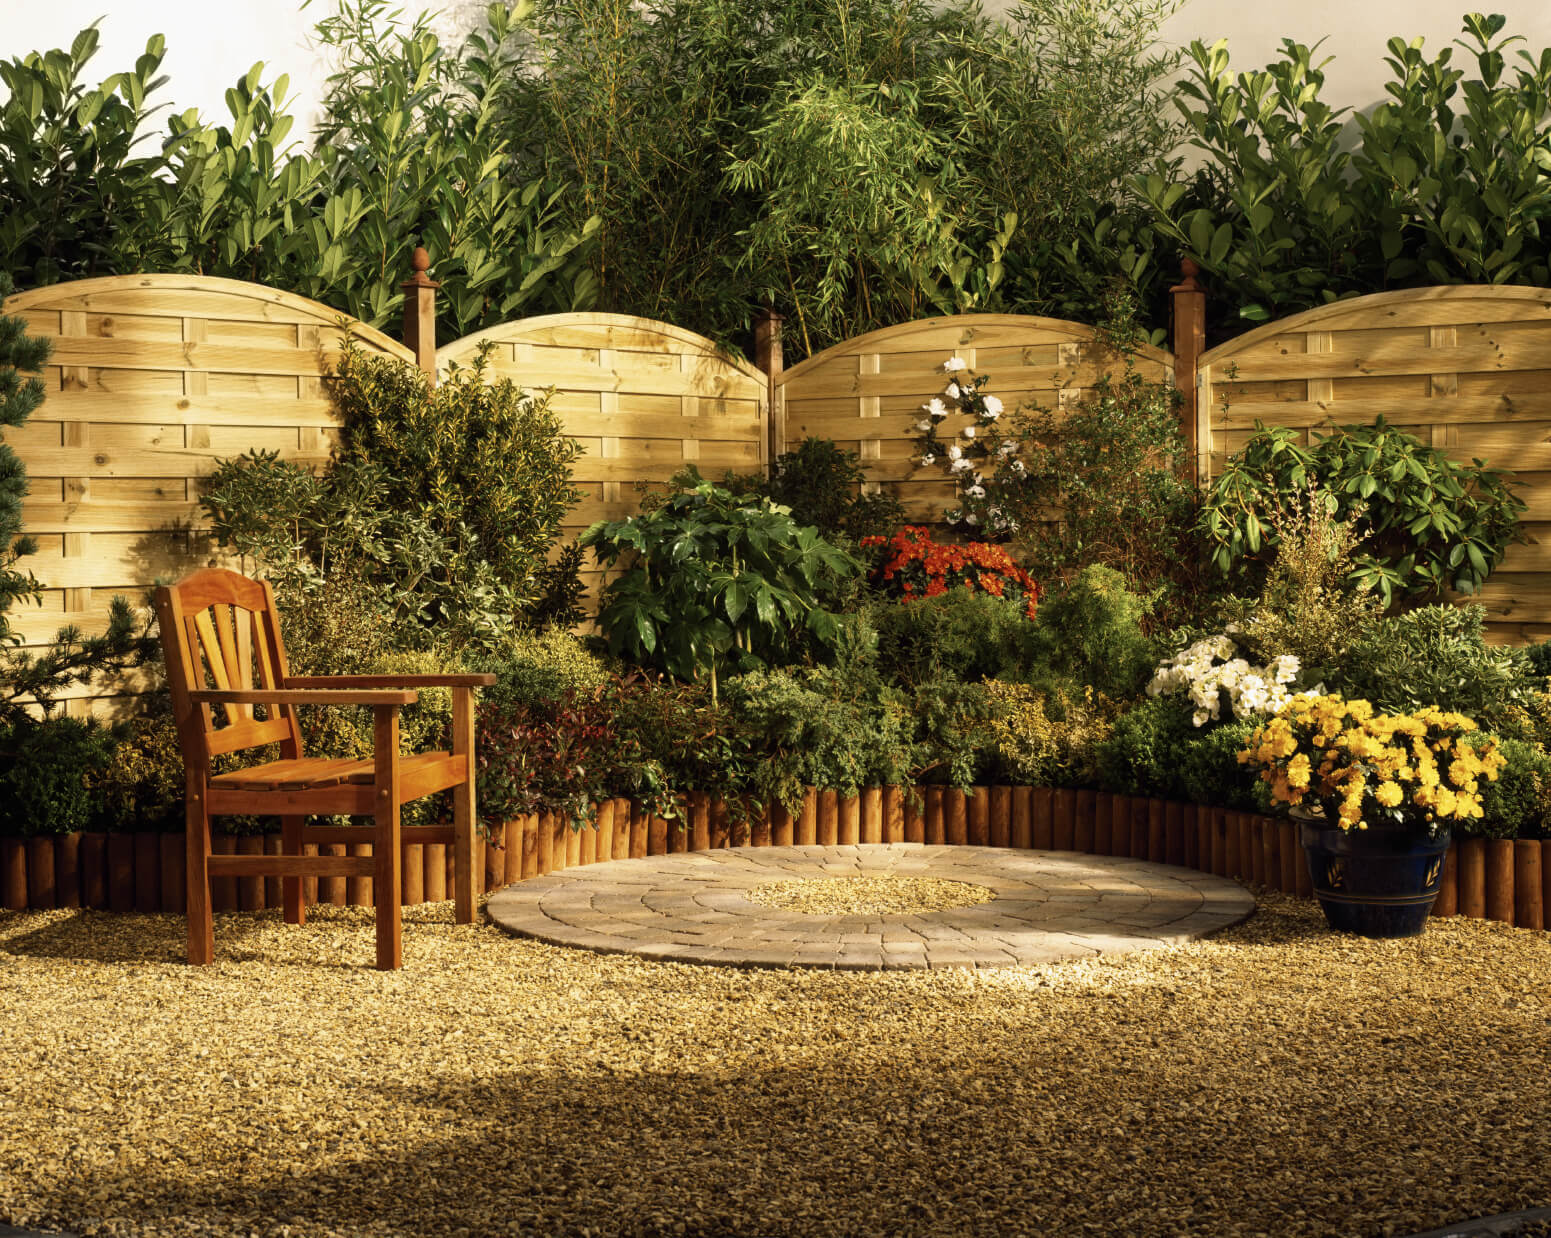 Small gardens are great for filling otherwise unused space. Here is a small garden along a fence. Fences make great backdrops for gardens. They can add some extra elements to your security.